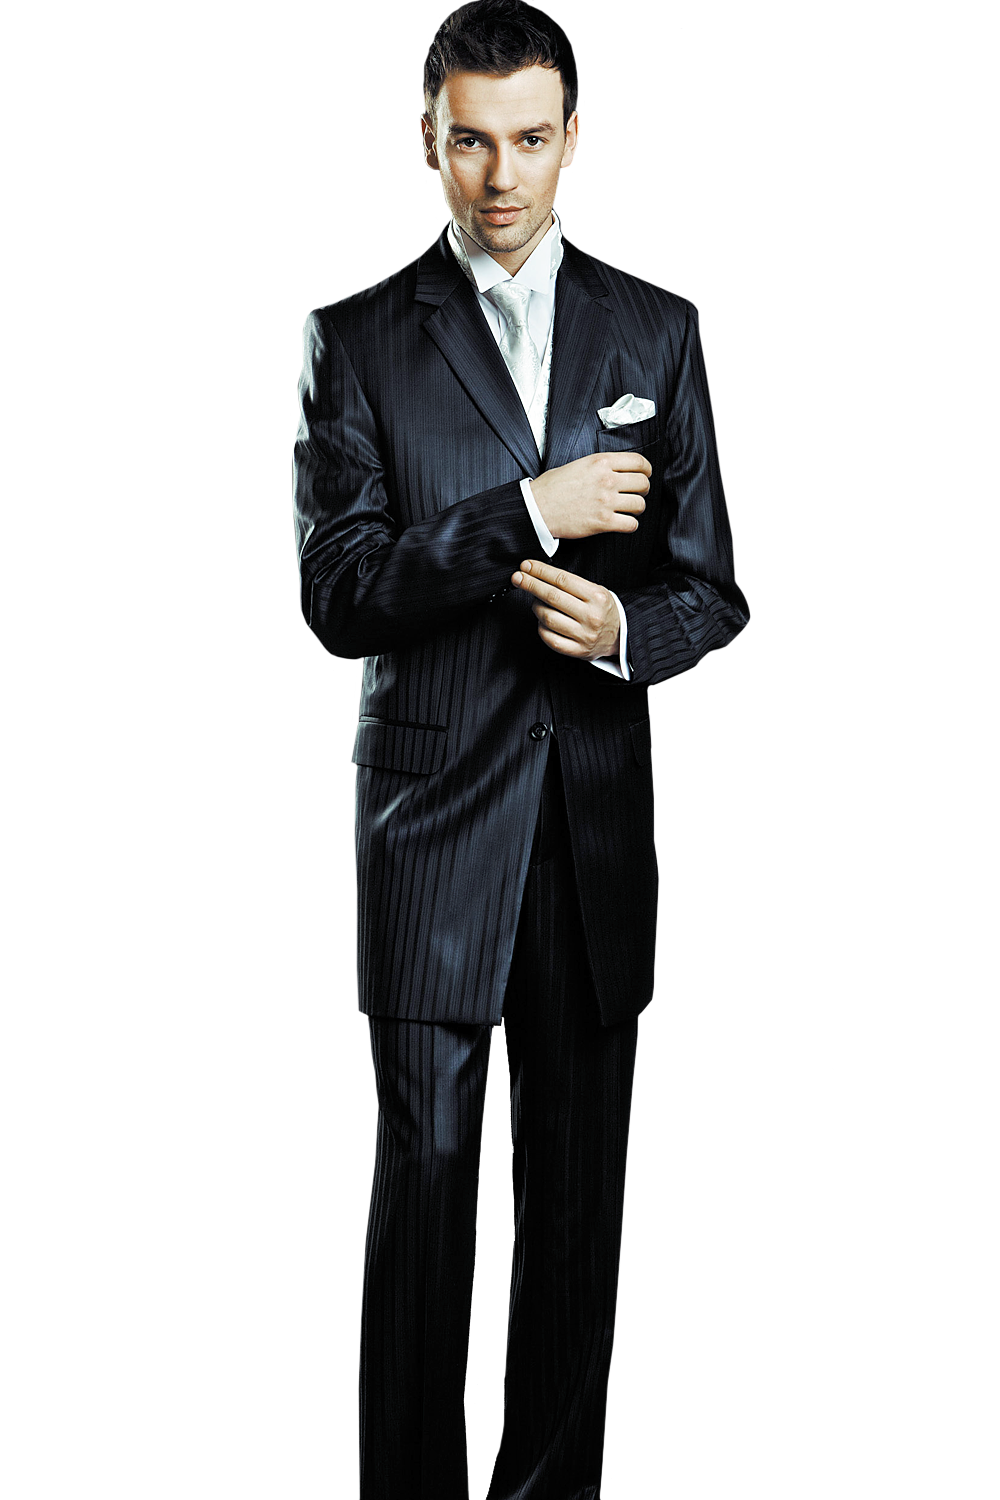 Guy in suit png. Businessman icon clipart web